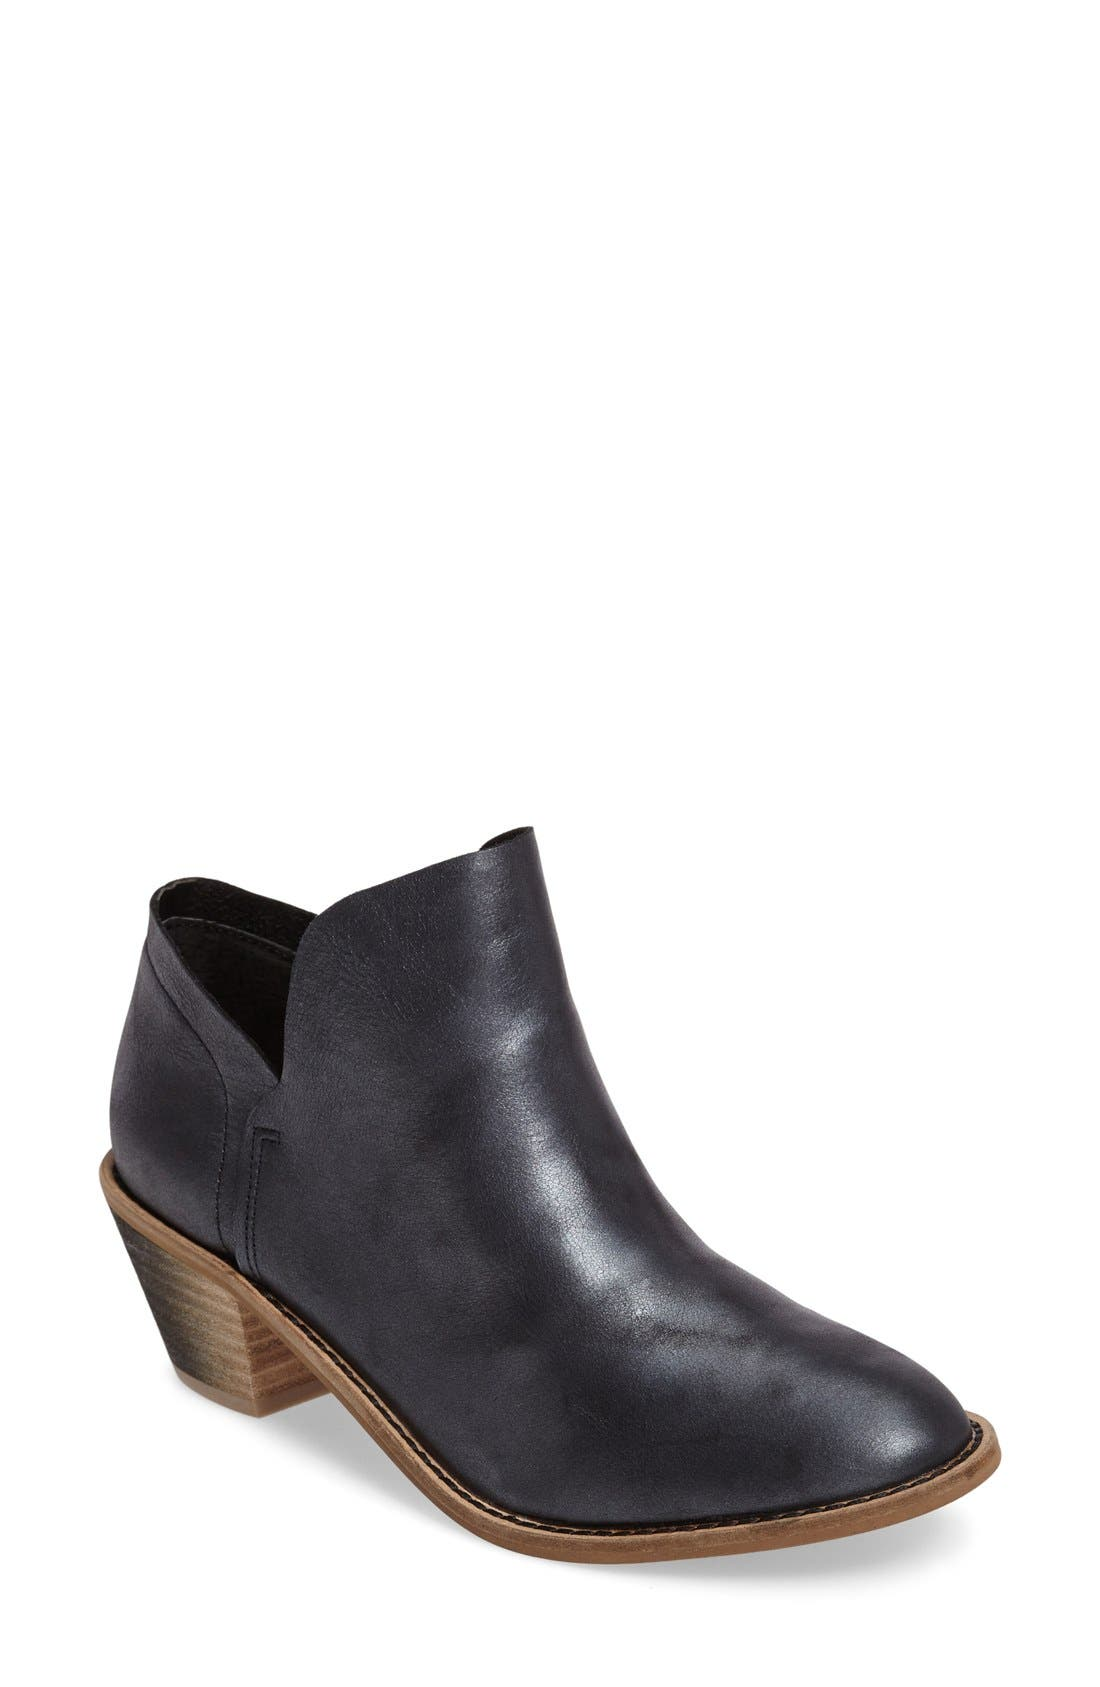 Kenmare Bootie,                         Main,                         color, Black Leather